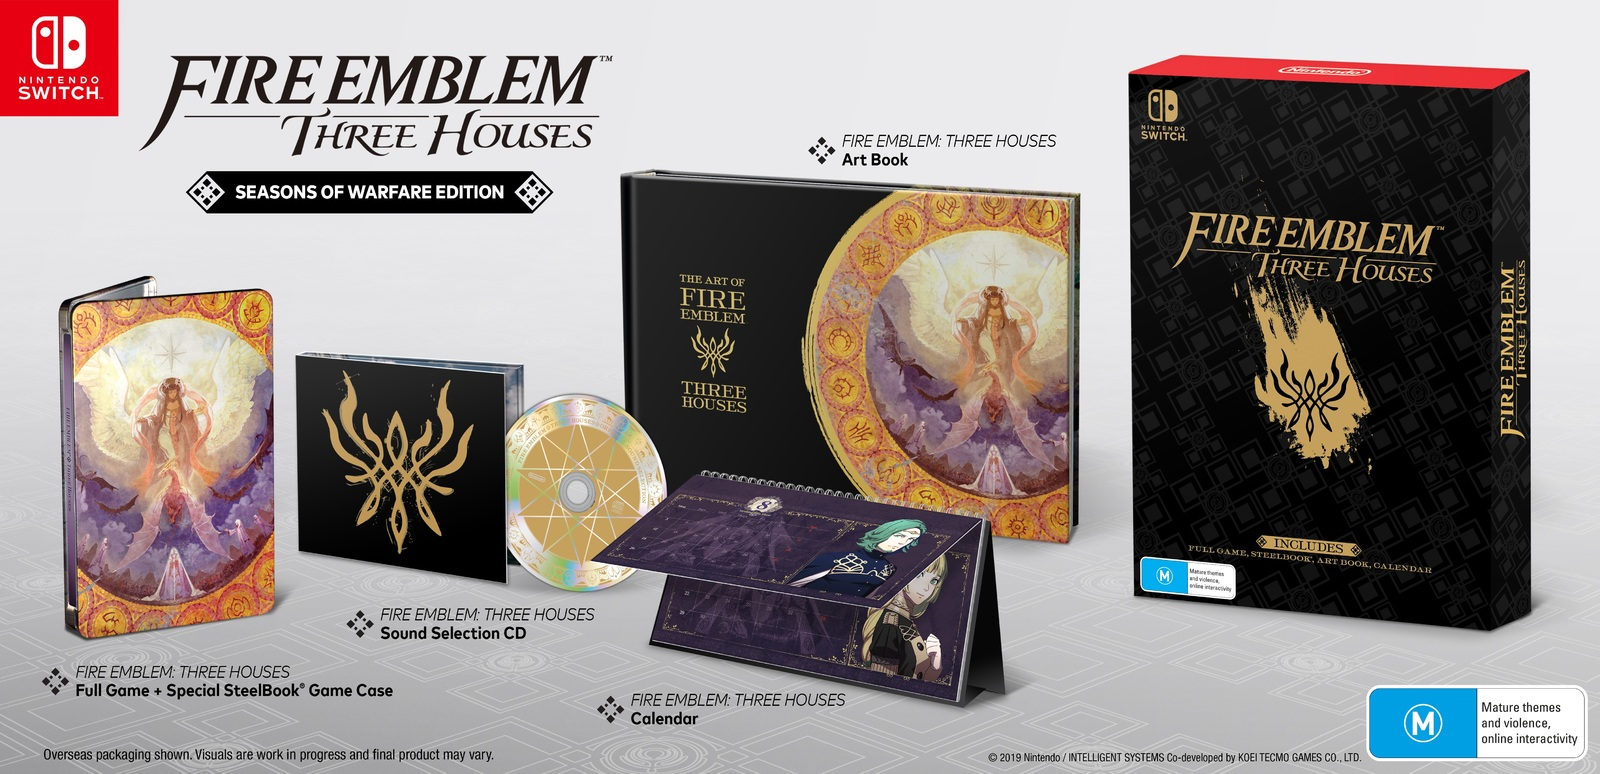 Fire Emblem: Three Houses Limited Edition for Switch image